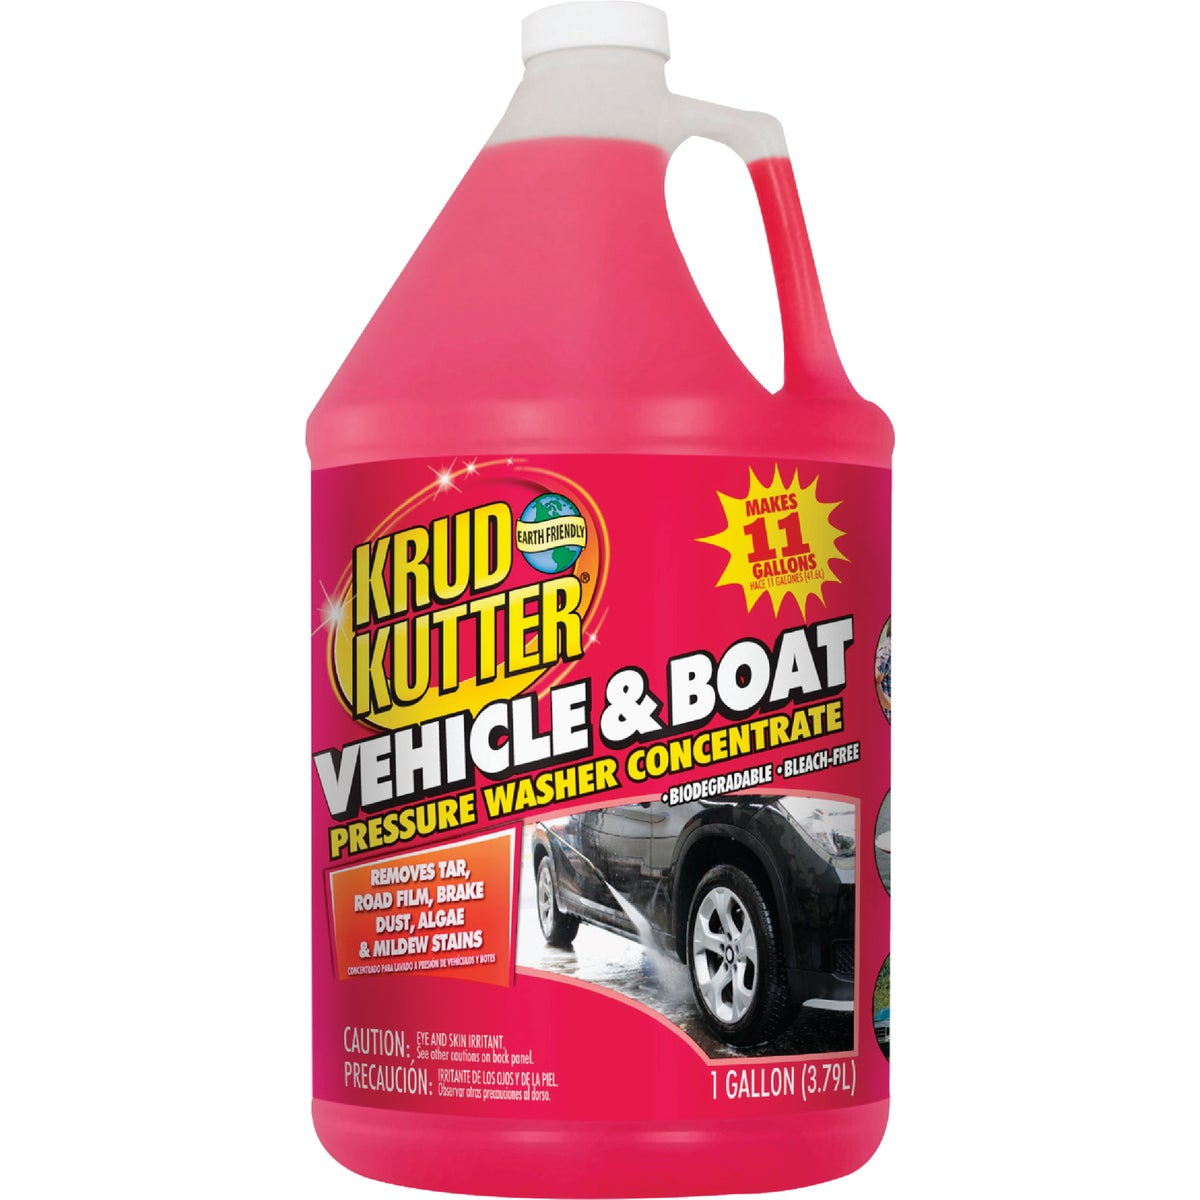 VEHICLE & BOAT CLEANER